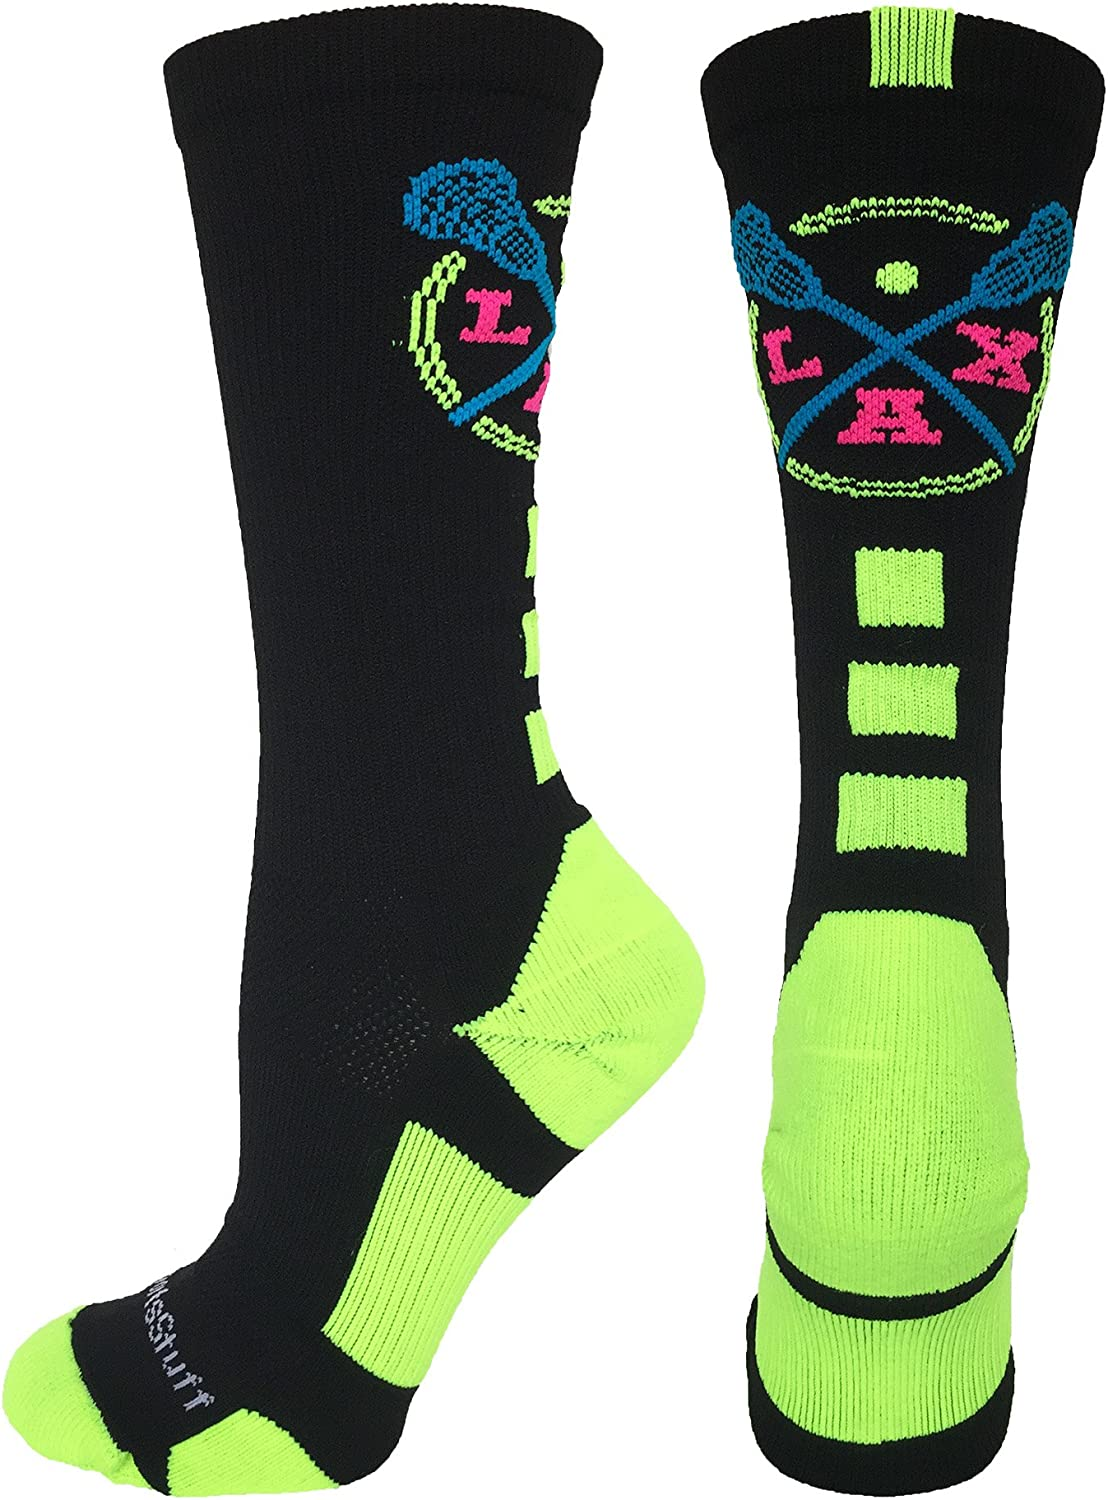 MadSportsStuff LAX Lacrosse Socks with Lacrosse Sticks Athletic Crew Socks (Multiple Colors)